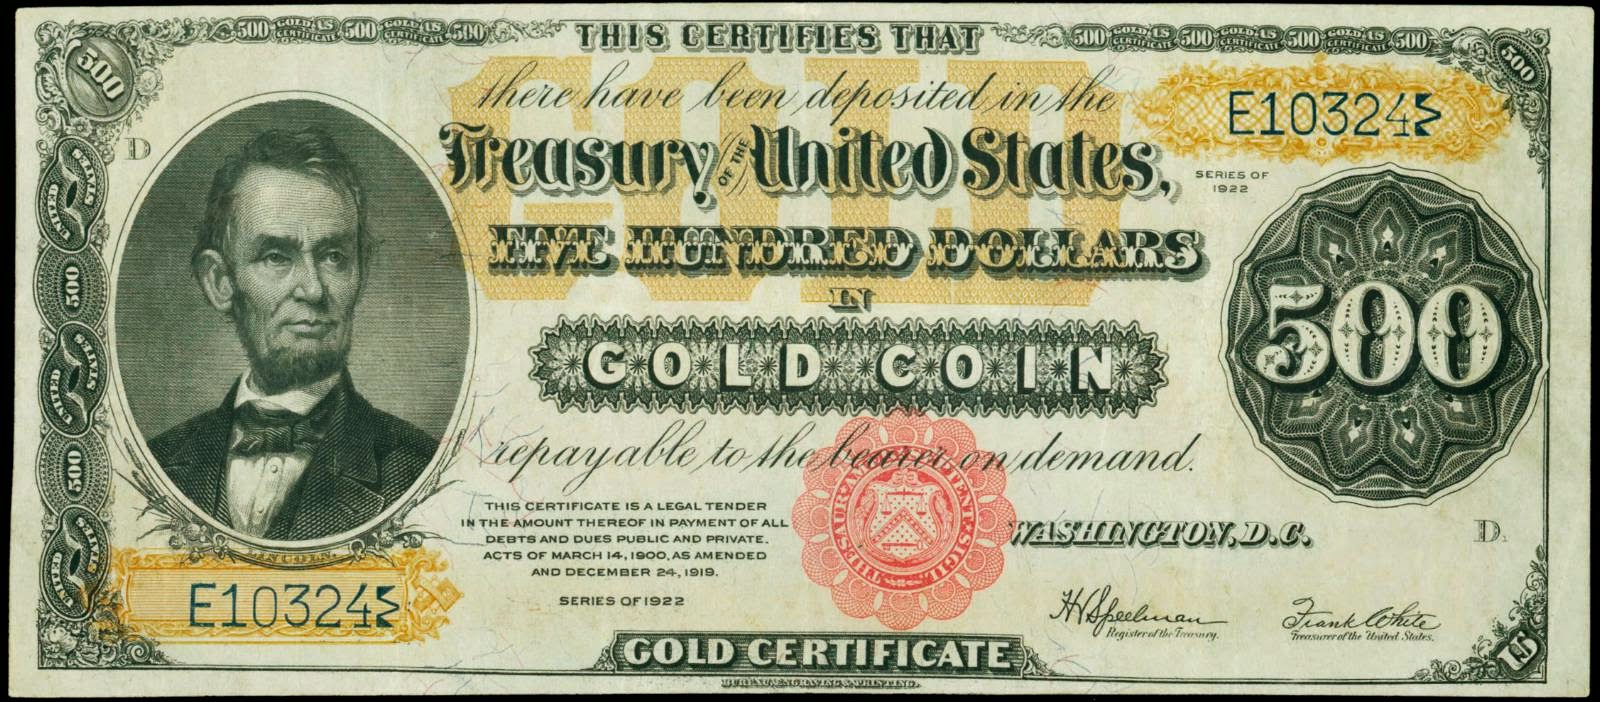 500 Dollar bill Gold Certificate 1922 Abraham Lincoln